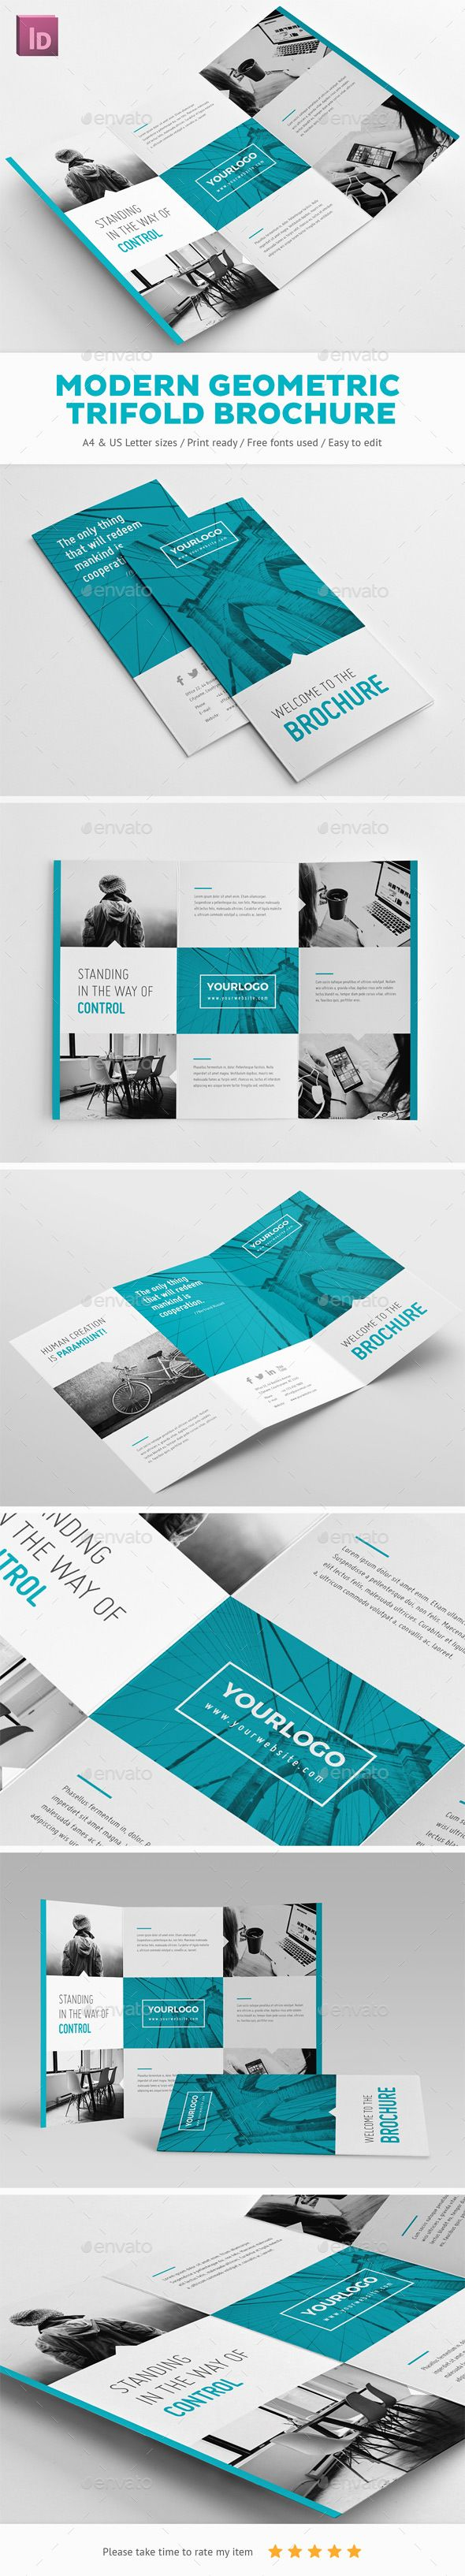 Modern Geometric Trifold Brochure | Folletos, Diseño de folletos y ...